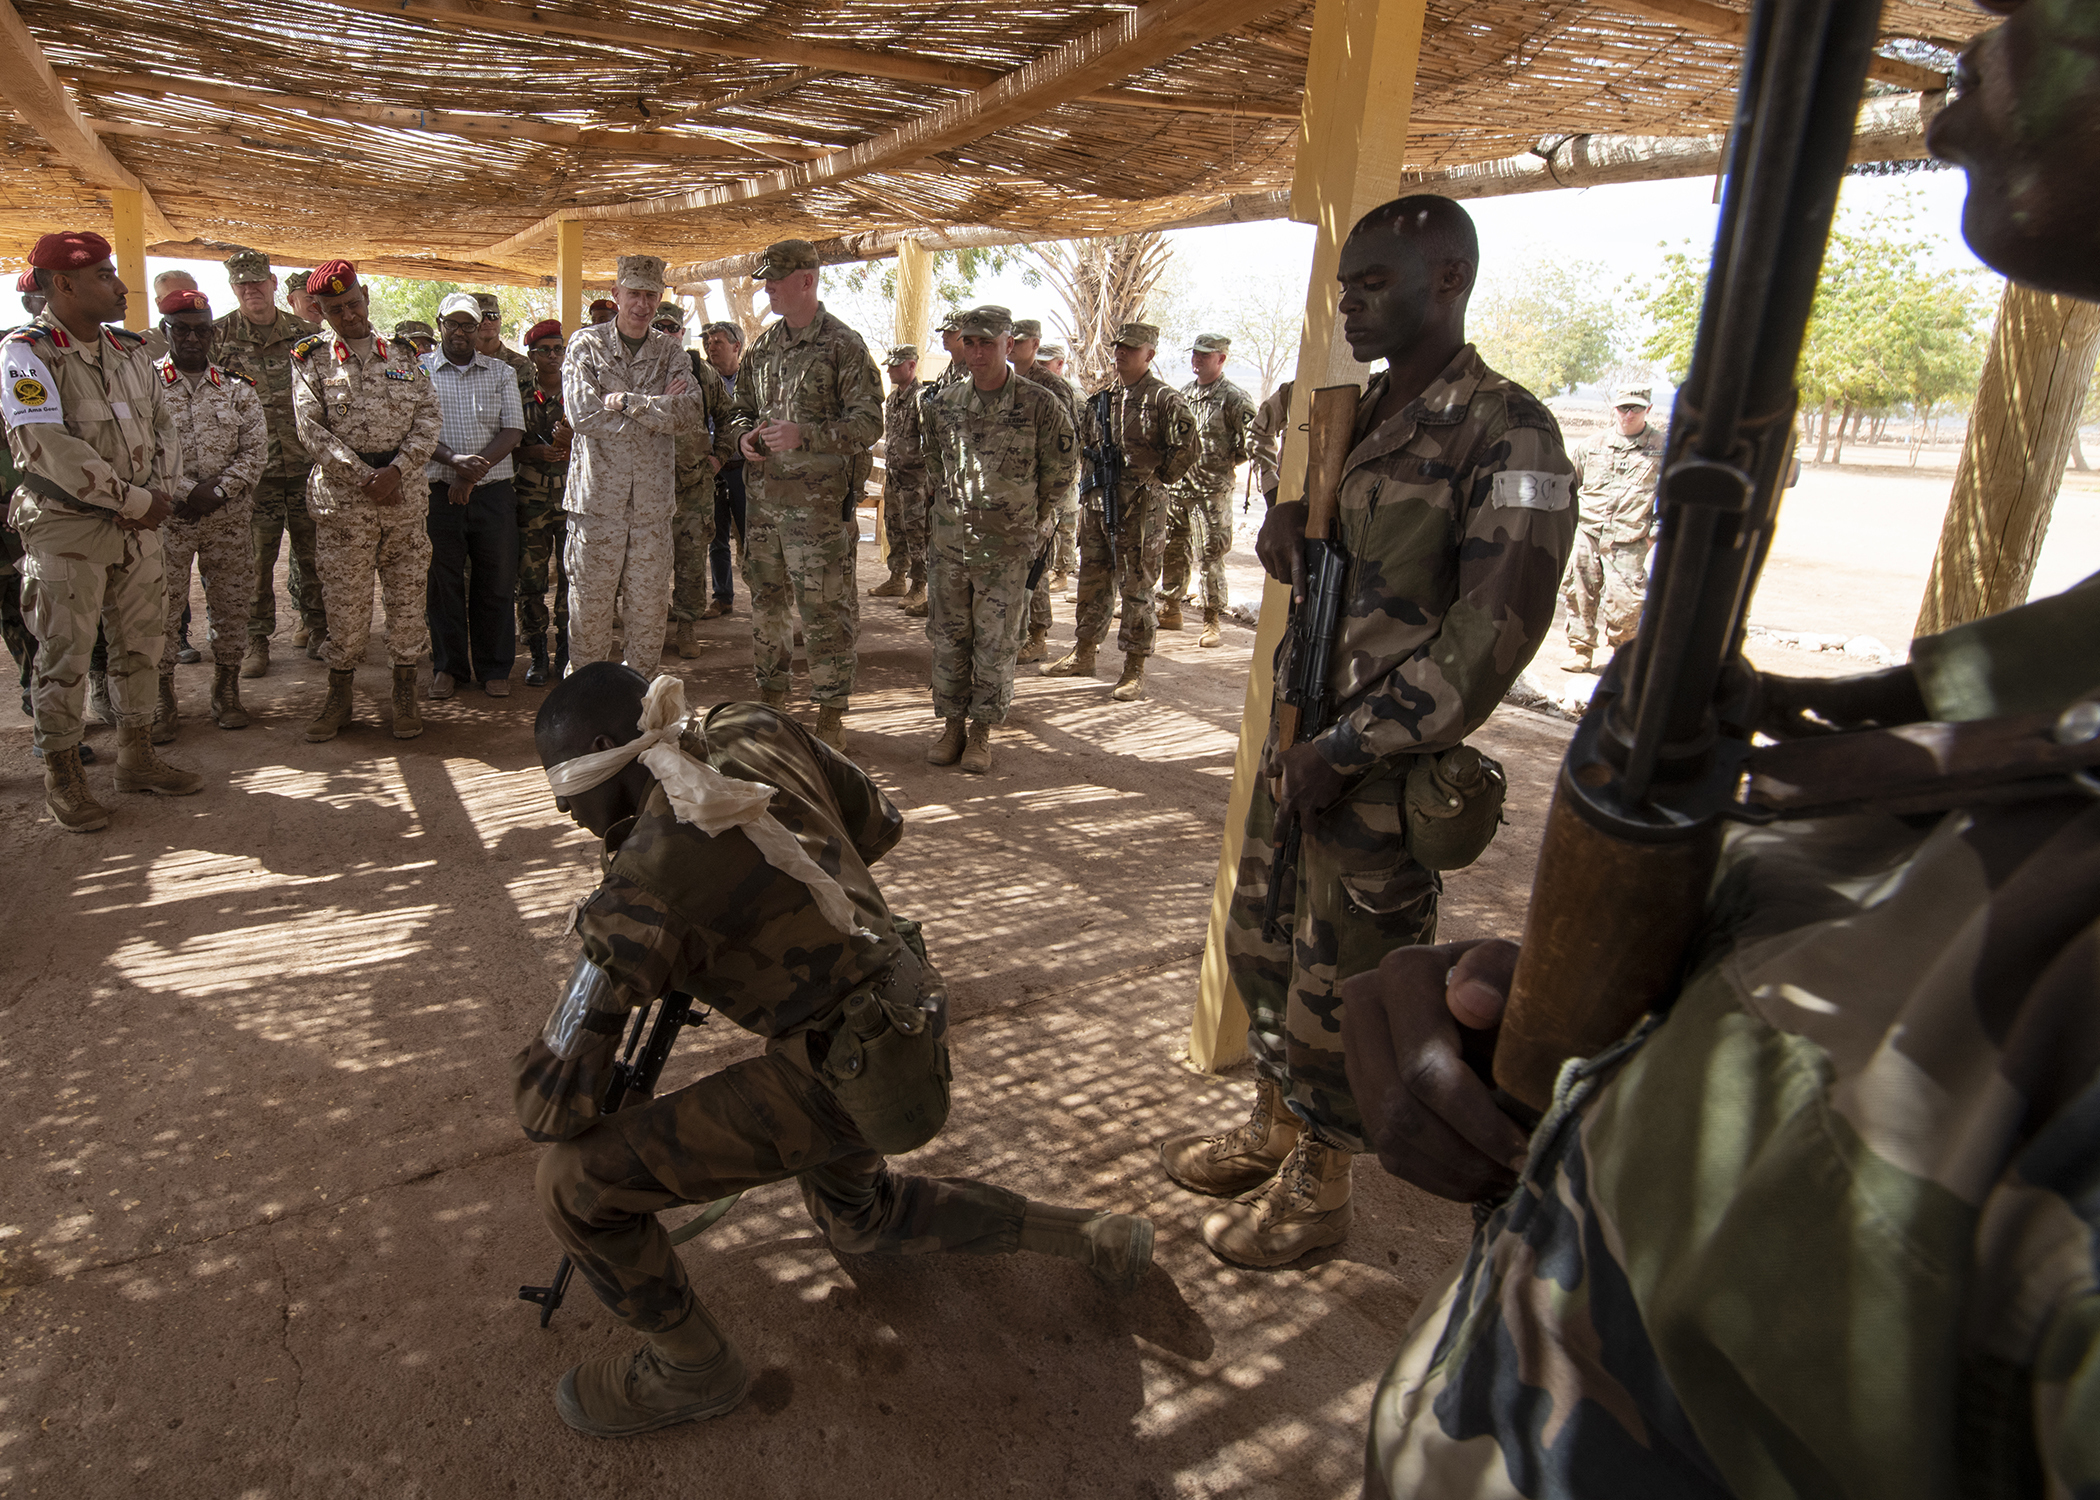 U.S. Marine Corps Gen. Thomas D. Waldhauser, commander of U.S. Africa Command, watches a demonstration by a soldier assigned to the Rapid Intervention Battalion, the Djiboutian army's elite military force, during a visit with senior Djiboutian officials, including Chief of General Staff of the Djibouti Armed Forces Gen. Zakaria Cheik Ibrahim, at a training base in Djibouti, March 21, 2019. Waldhauser visited in order to discuss the growth and development of Djiboutian security forces. (U.S. Air Force photo by Tech. Sgt. Shawn Nickel)